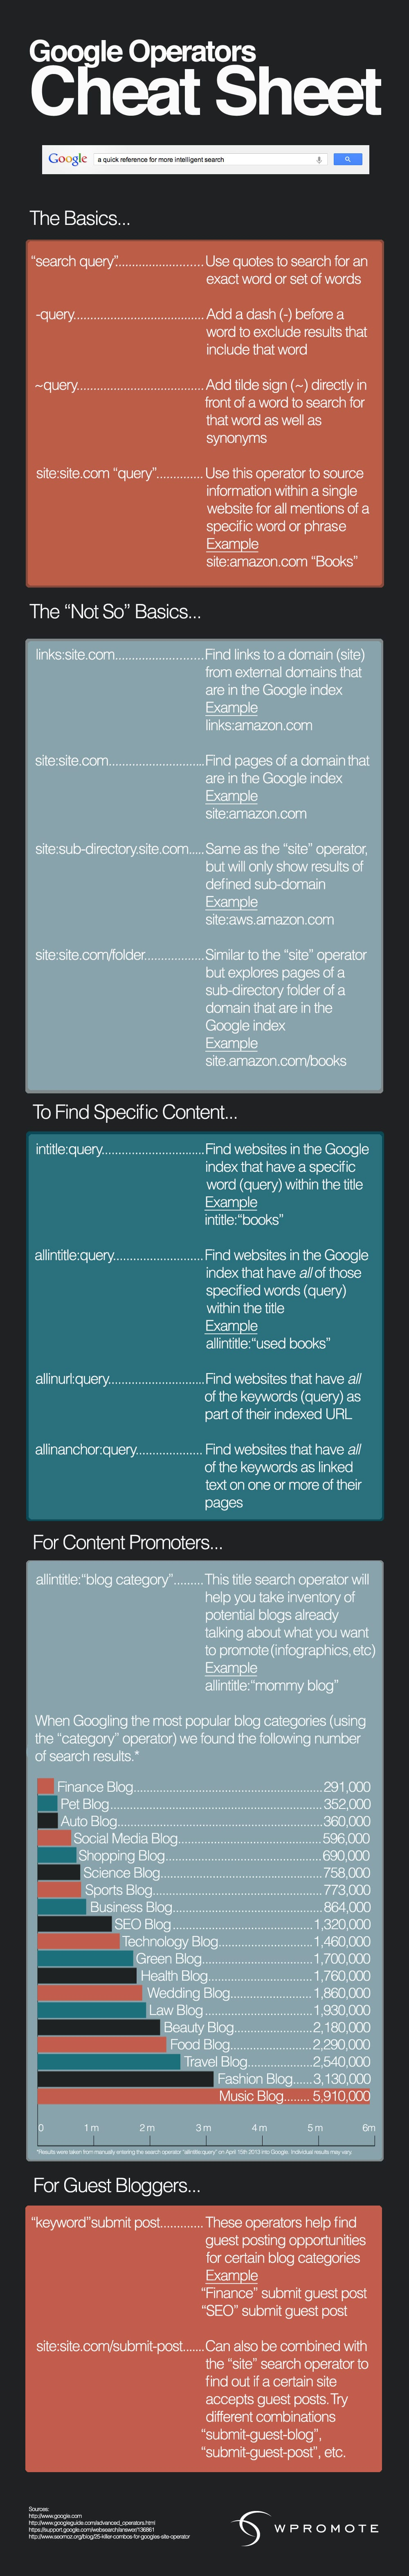 Use Google More Effectively: The Google Operators Guide [Infographic]